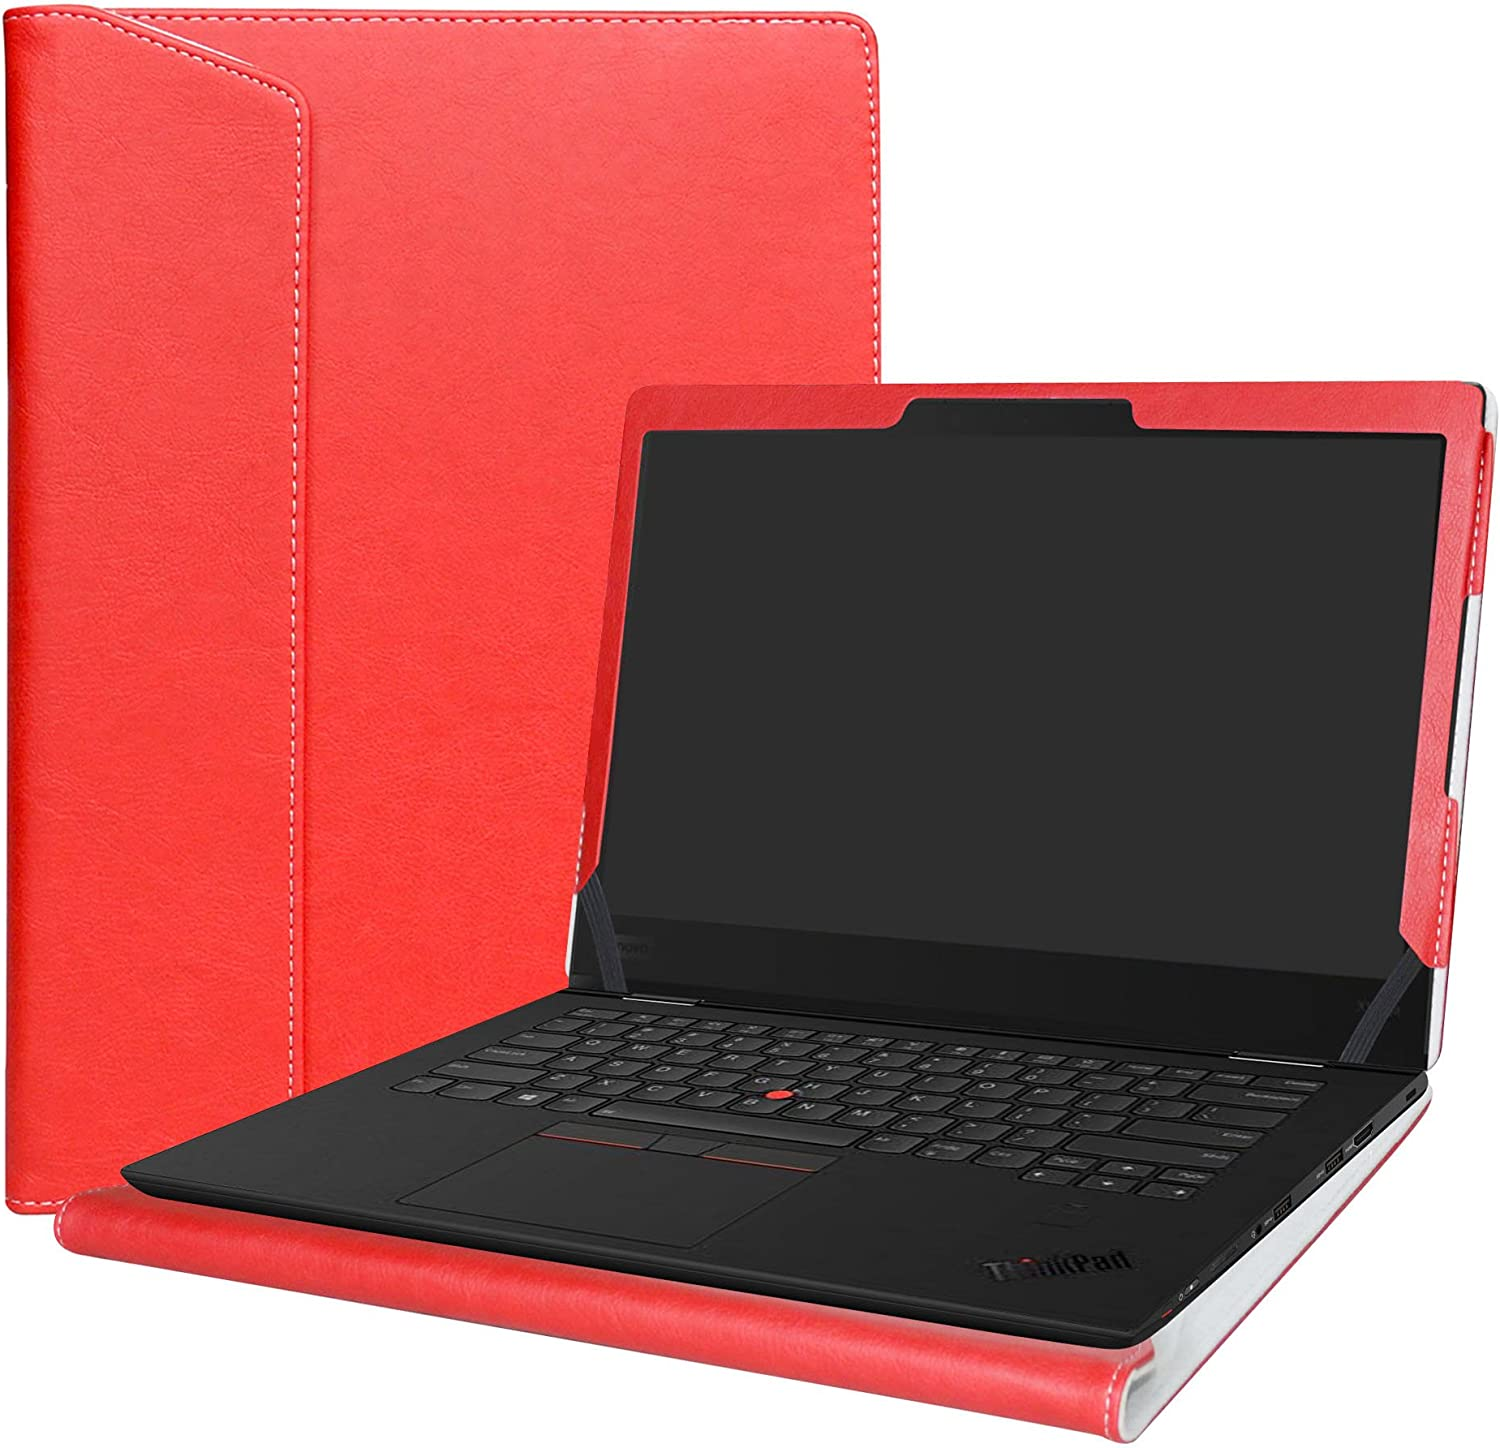 "Alapmk Protective Case Cover for 14"" Lenovo Thinkpad X1 Yoga 1st Gen & 2nd Gen & 3rd Gen Series Laptop(Note:Not fit Thinkpad X1 Yoga 4th Gen/Thinkpad X1 Carbon Series),Red"